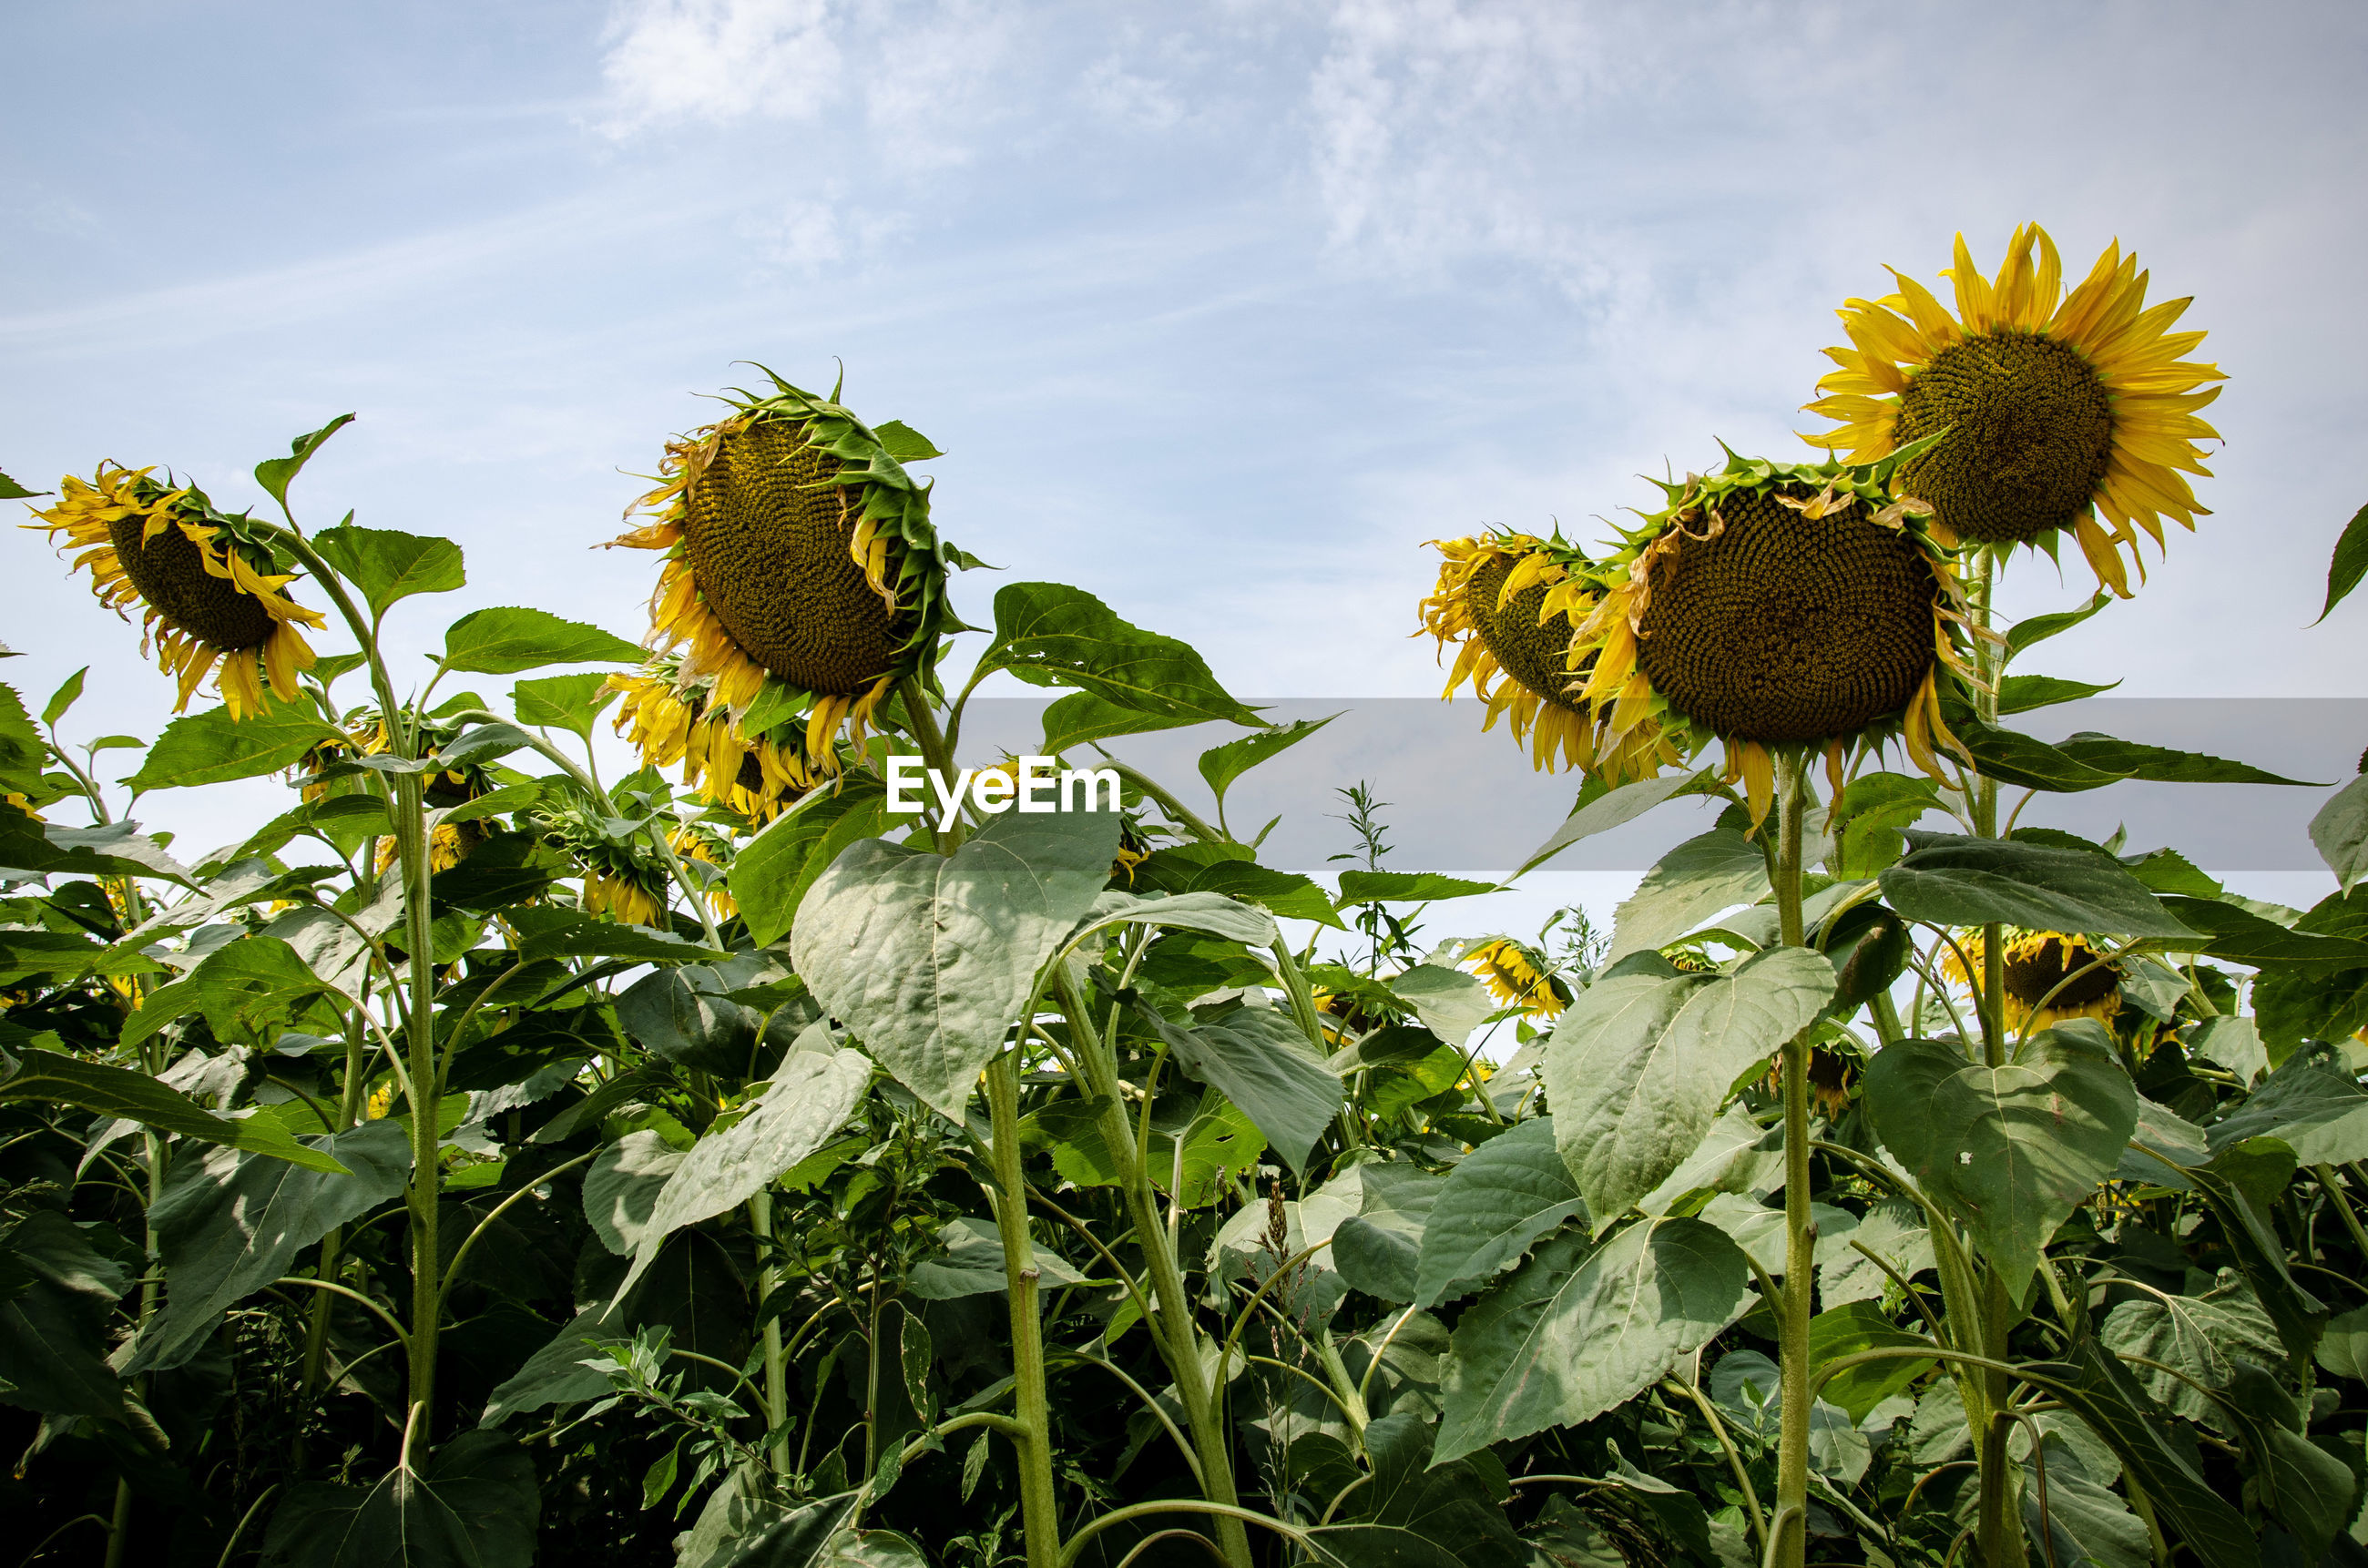 LOW ANGLE VIEW OF SUNFLOWER ON PLANT